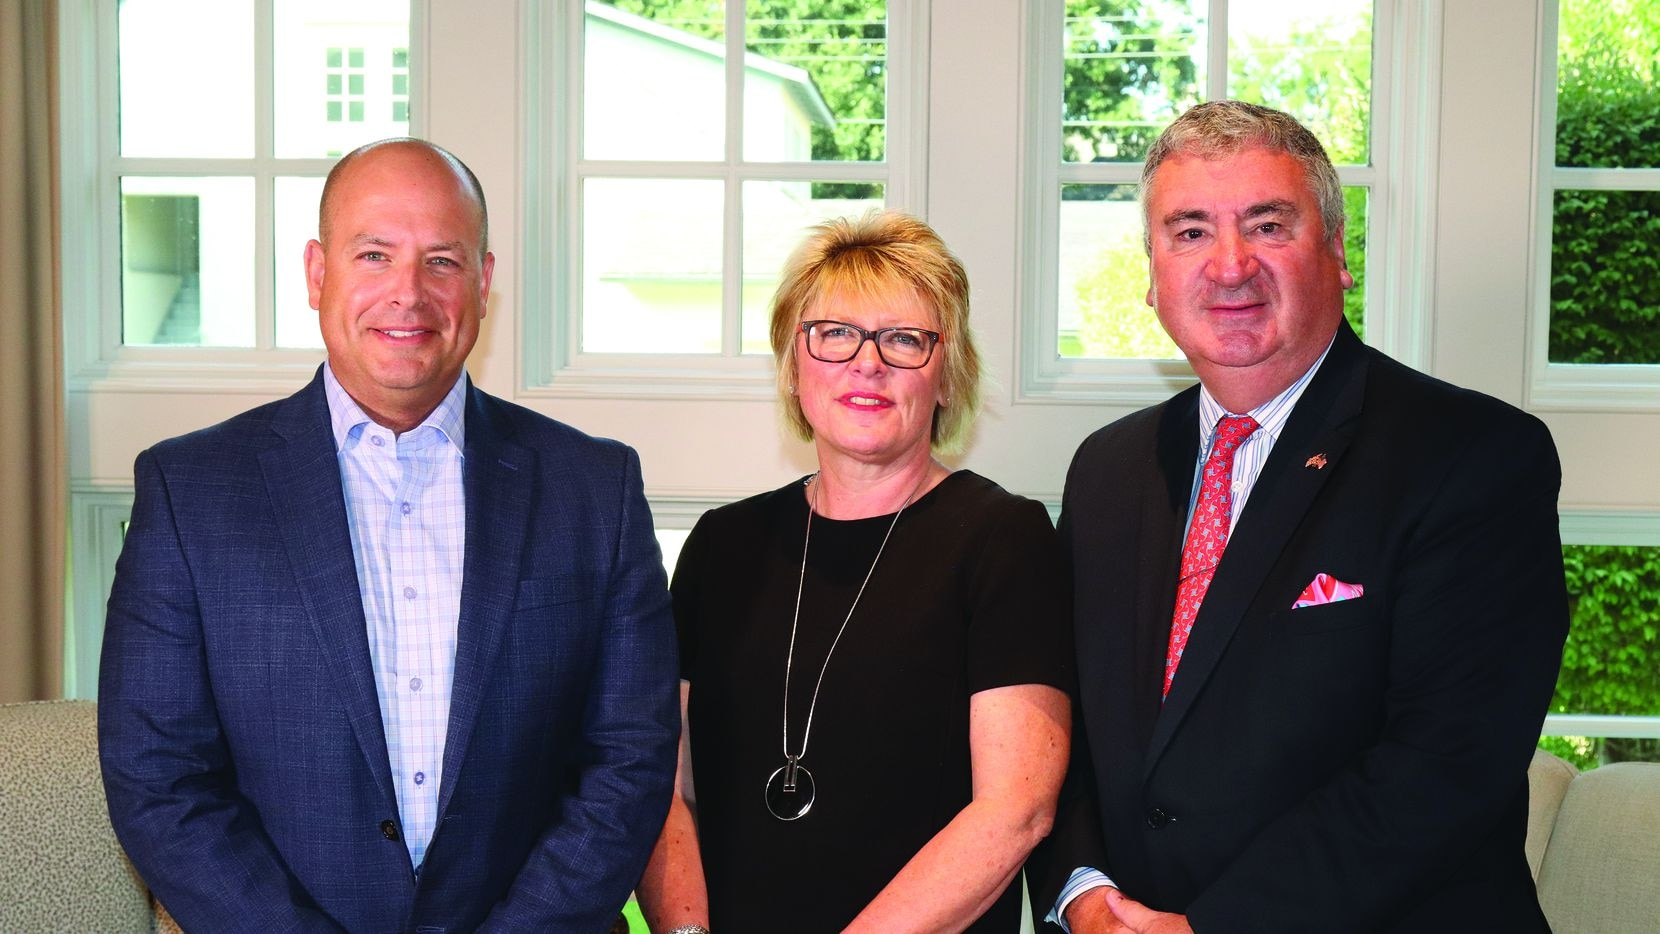 From left, Ebby Halliday Companies president and CEO Chris Kelly with Mayfair International Realty's international director Annette Reeve and managing director Nick Churton.